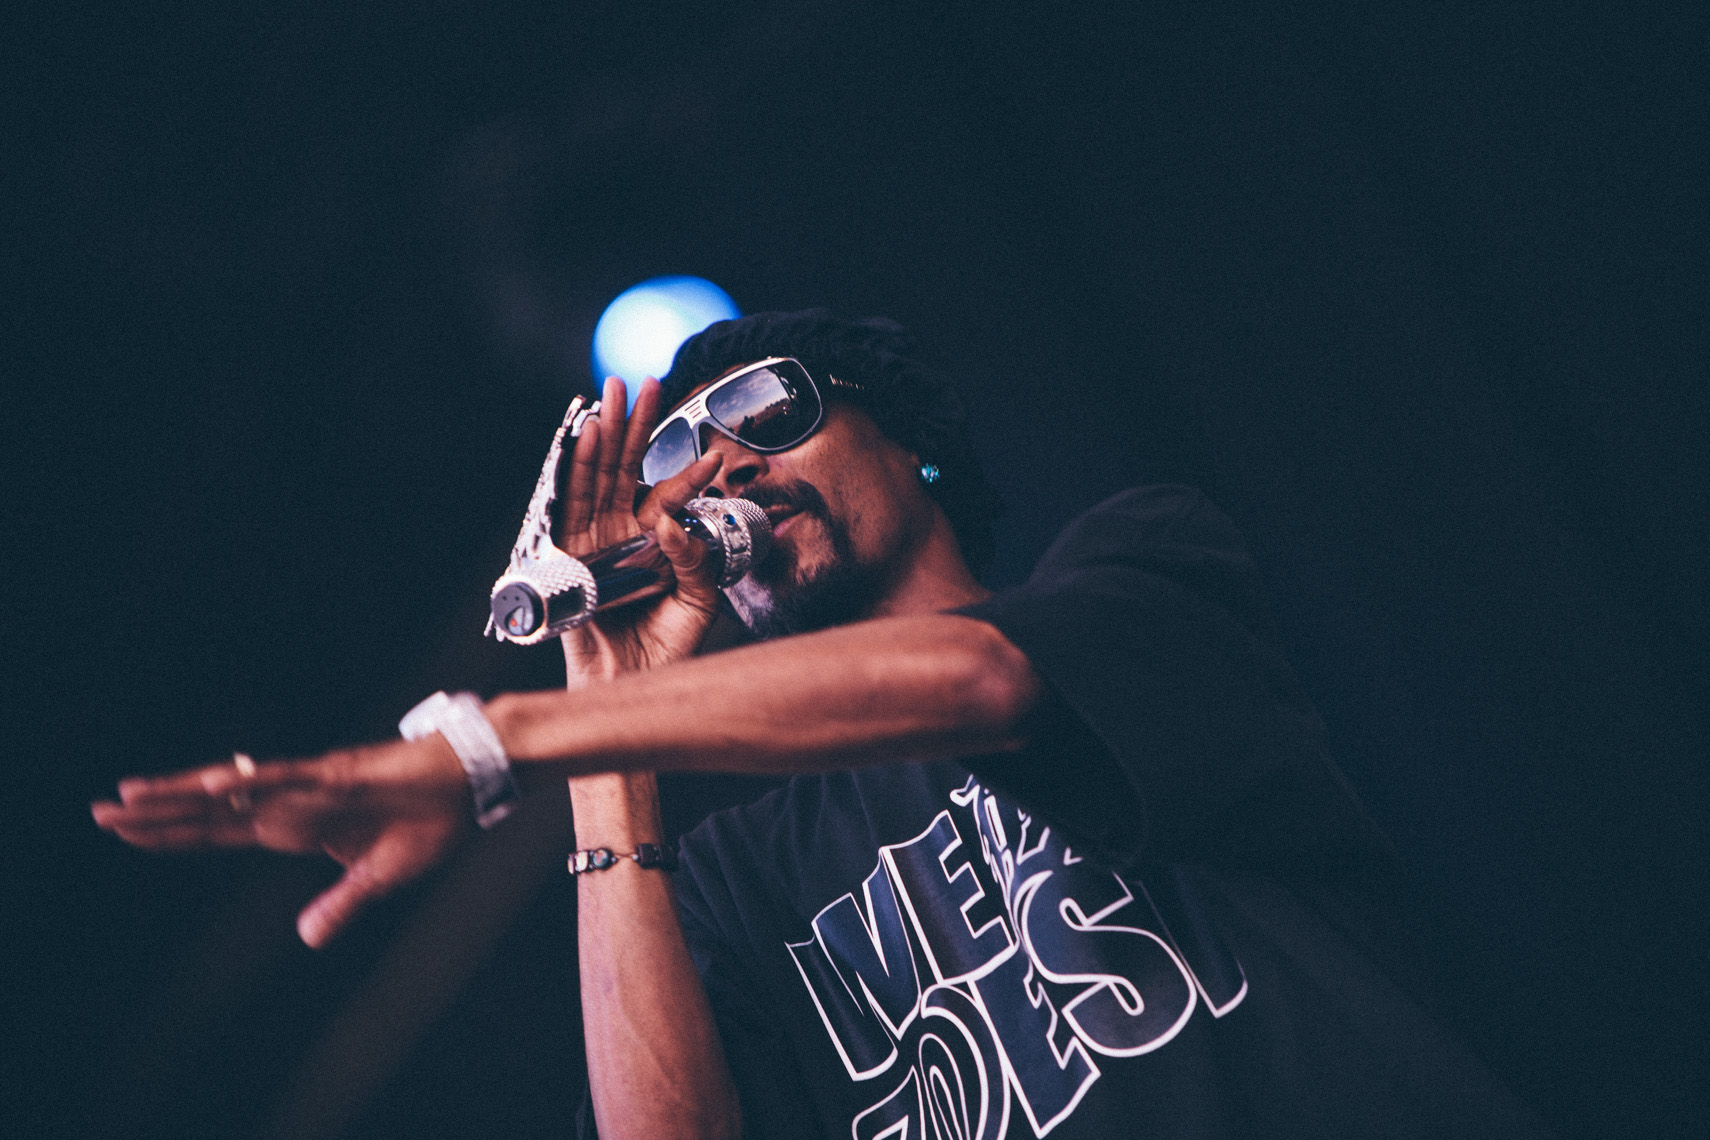 Snoop Dog at Bonnaroo music festival photographed by Forest Woodward